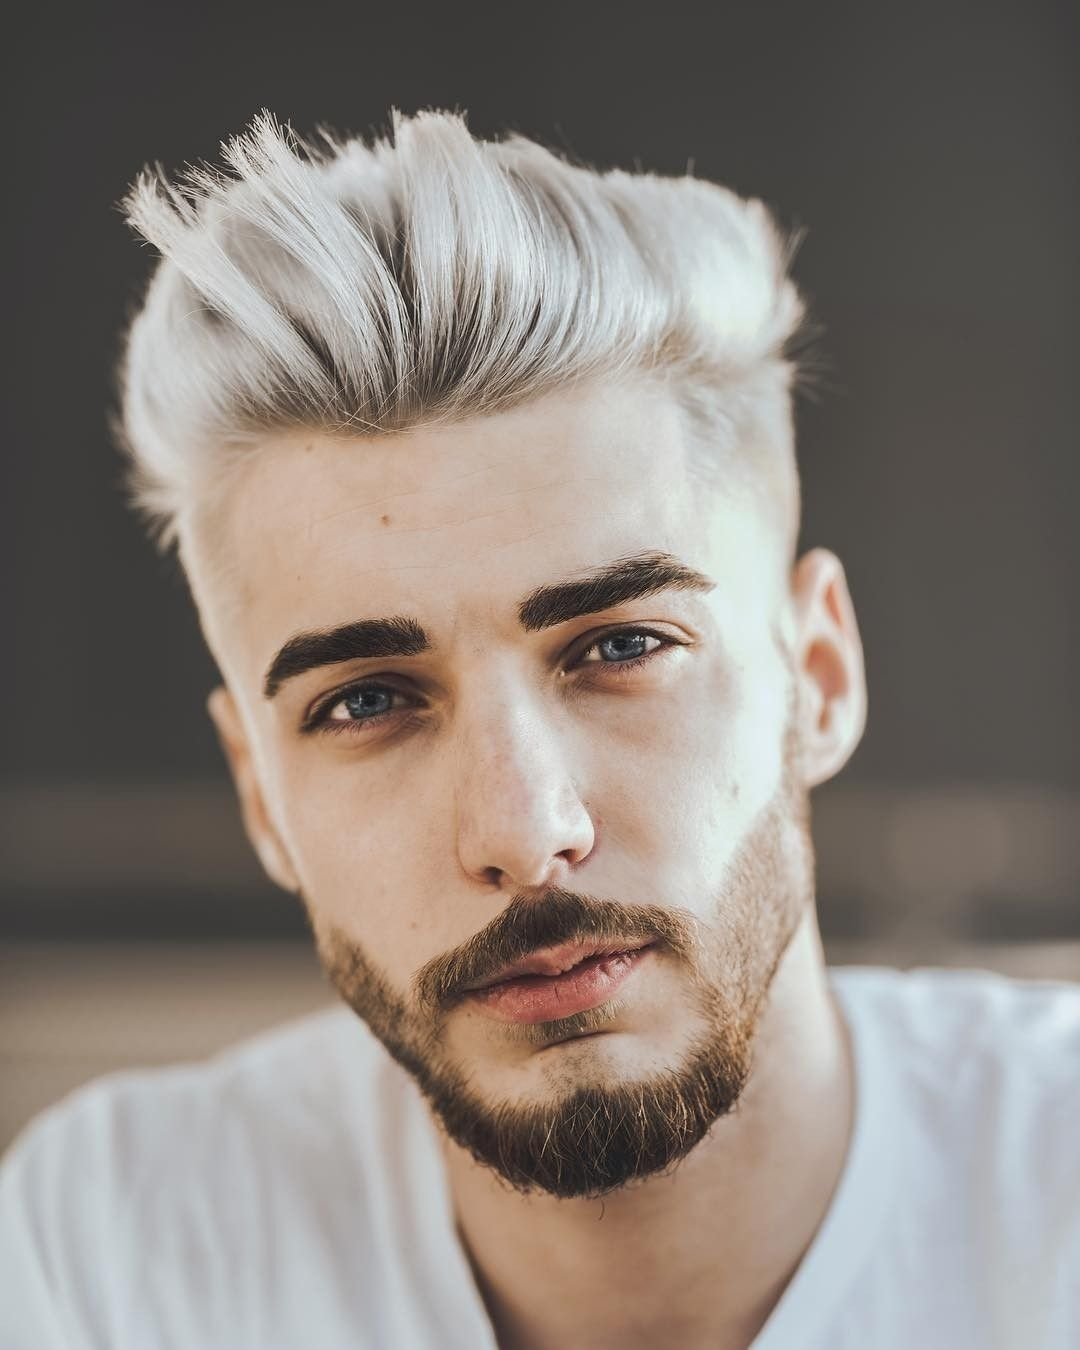 White Hairstyle Gents Hair Style Beard And Mustache Styles Haircuts For Men